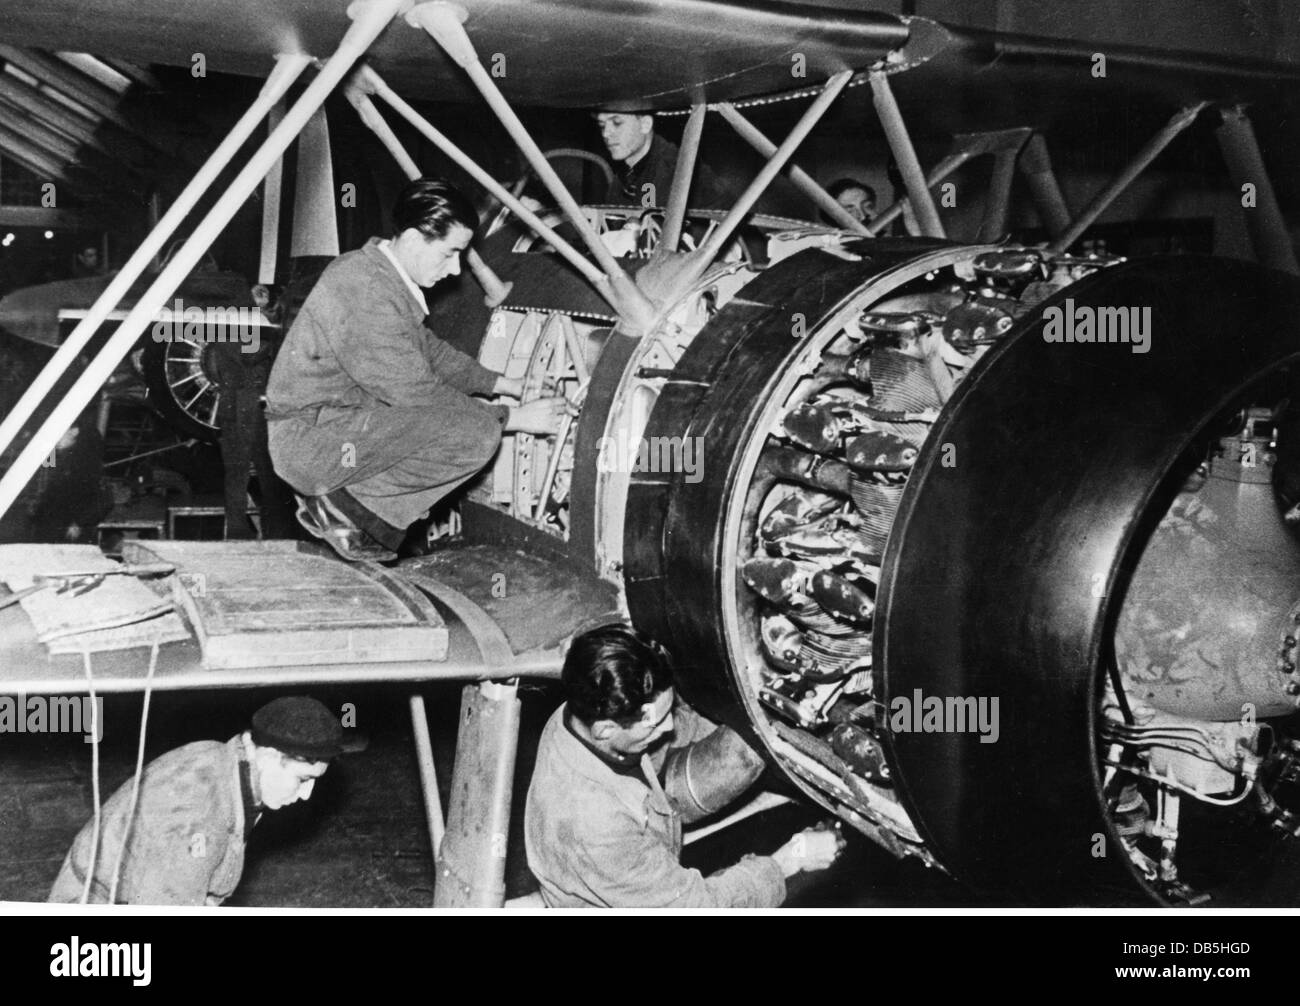 events, Second World War / WWII, Italy, armaments industry, aircraft engine Fiat A.74 is mounted to a fighter biplane - Stock Image